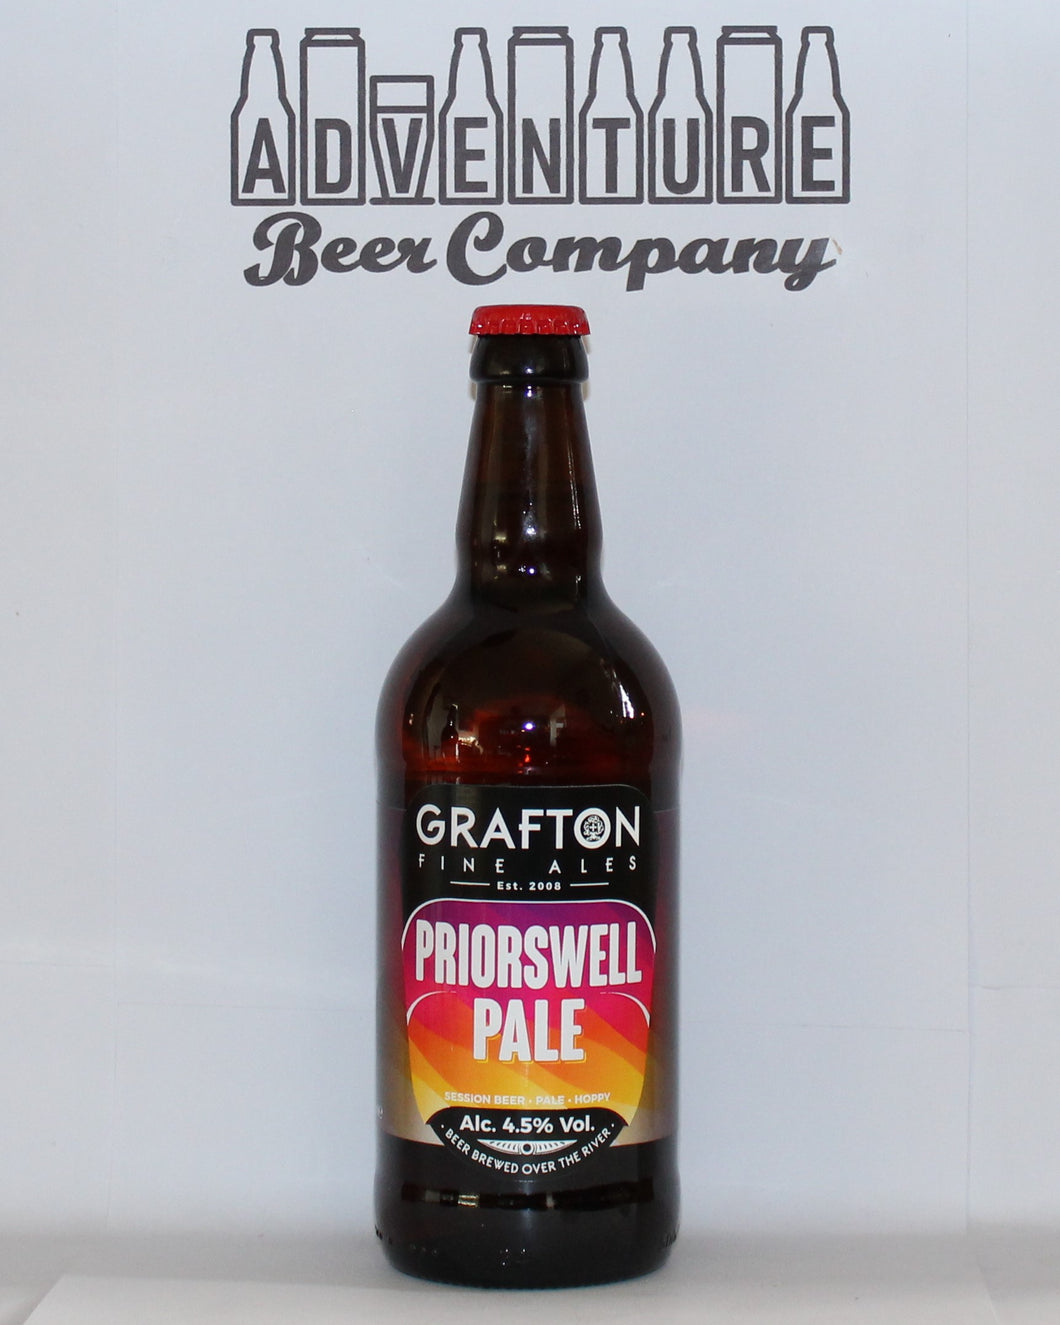 Grafton Priorswell Pale